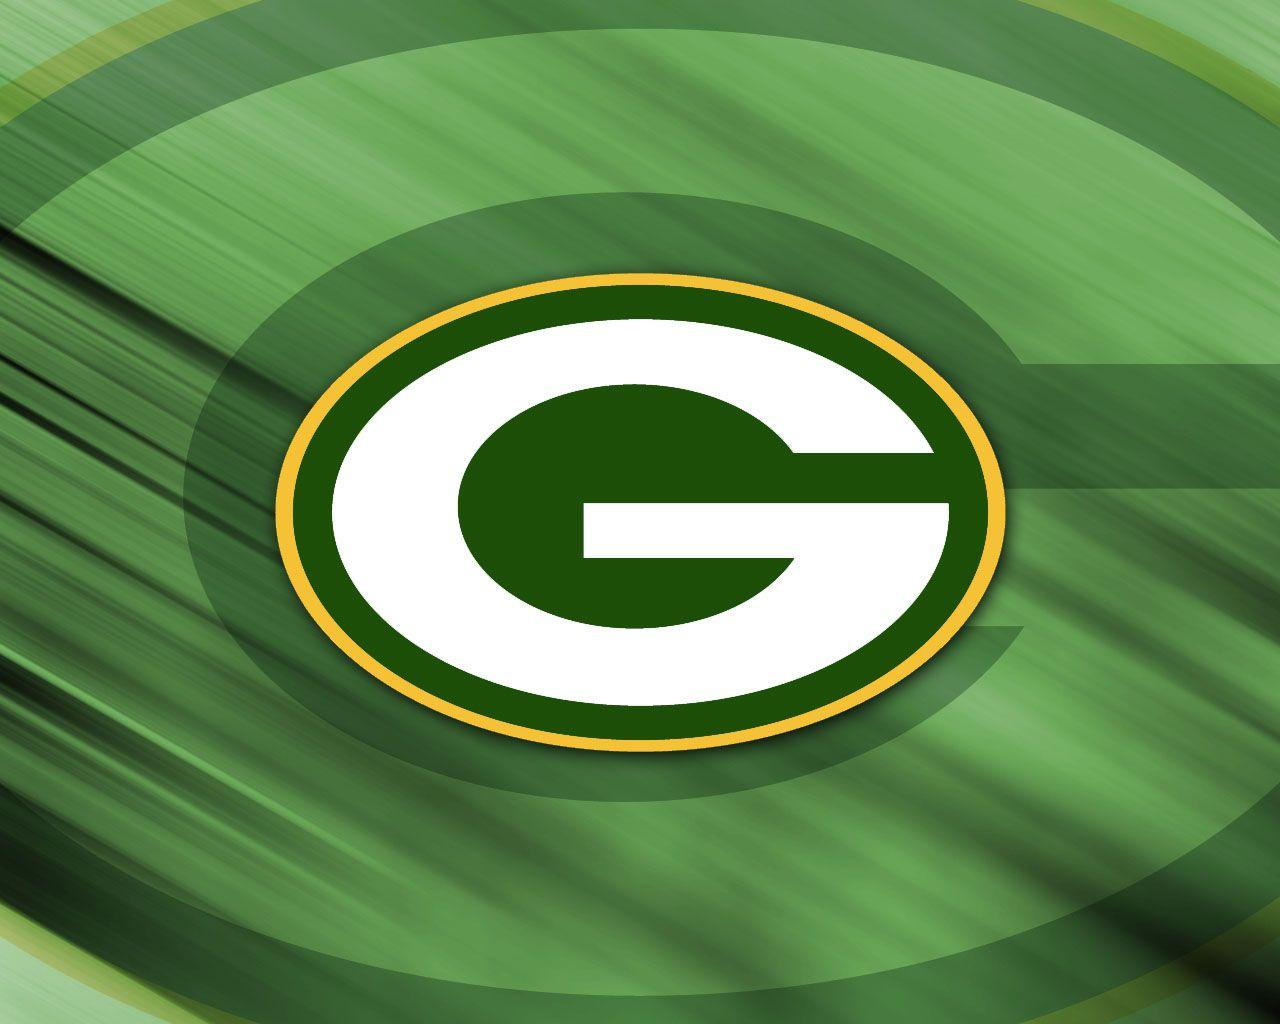 Green Bay Packers Team Logo Wallpaper 1280x1024